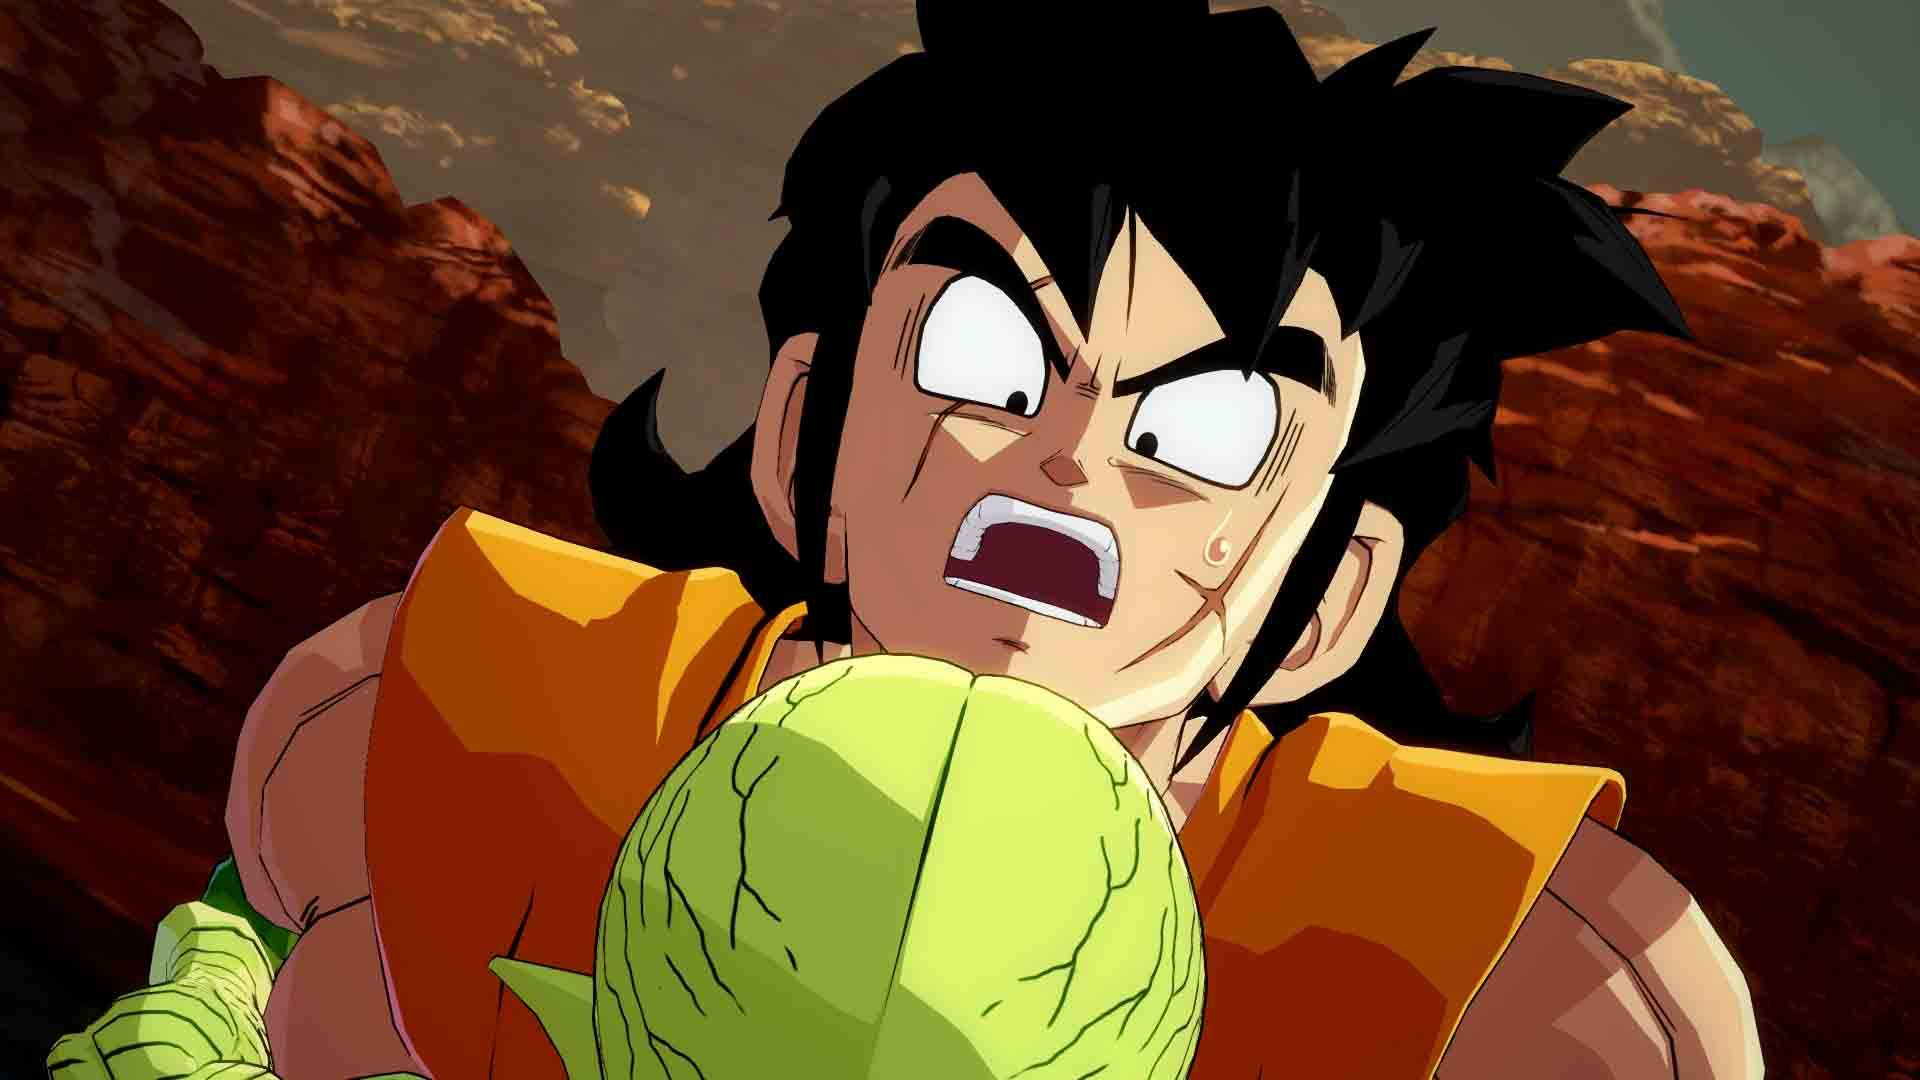 Saibamen_self-destructs_and_kills_Yamcha_3_1513339116 Kopie